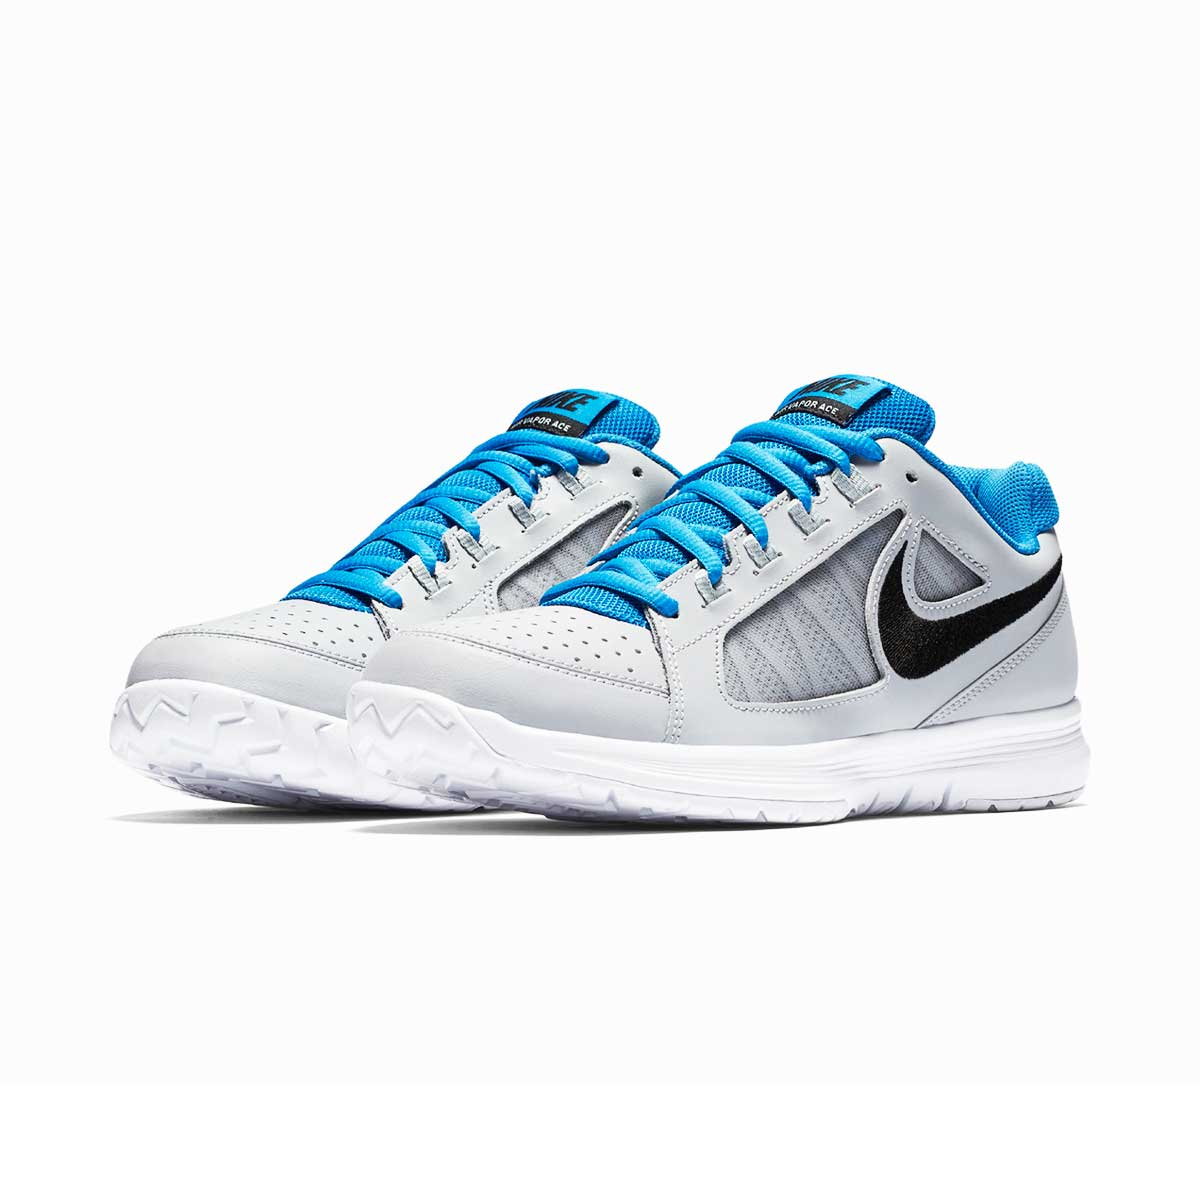 900d6082b0ed Buy Nike Air Vapor Ace Tennis Shoes (Grey Black Blue) Online